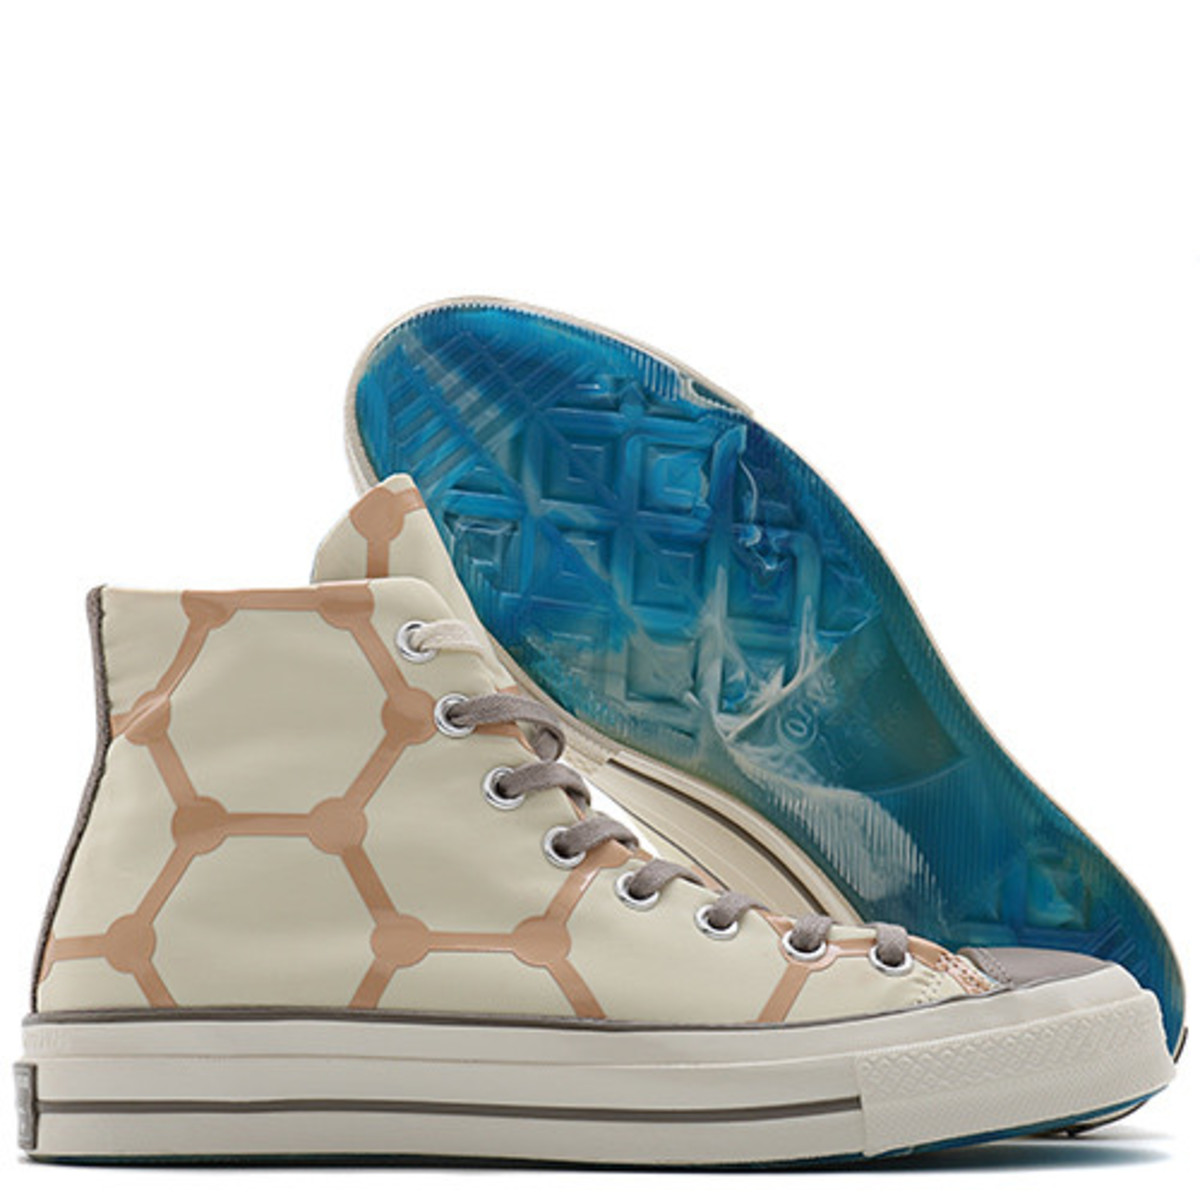 ba4f1a72172e Men s CONVERSE FIRST STRING CHUCK TAYLOR ALL STAR 70 S SPACE PACK ...